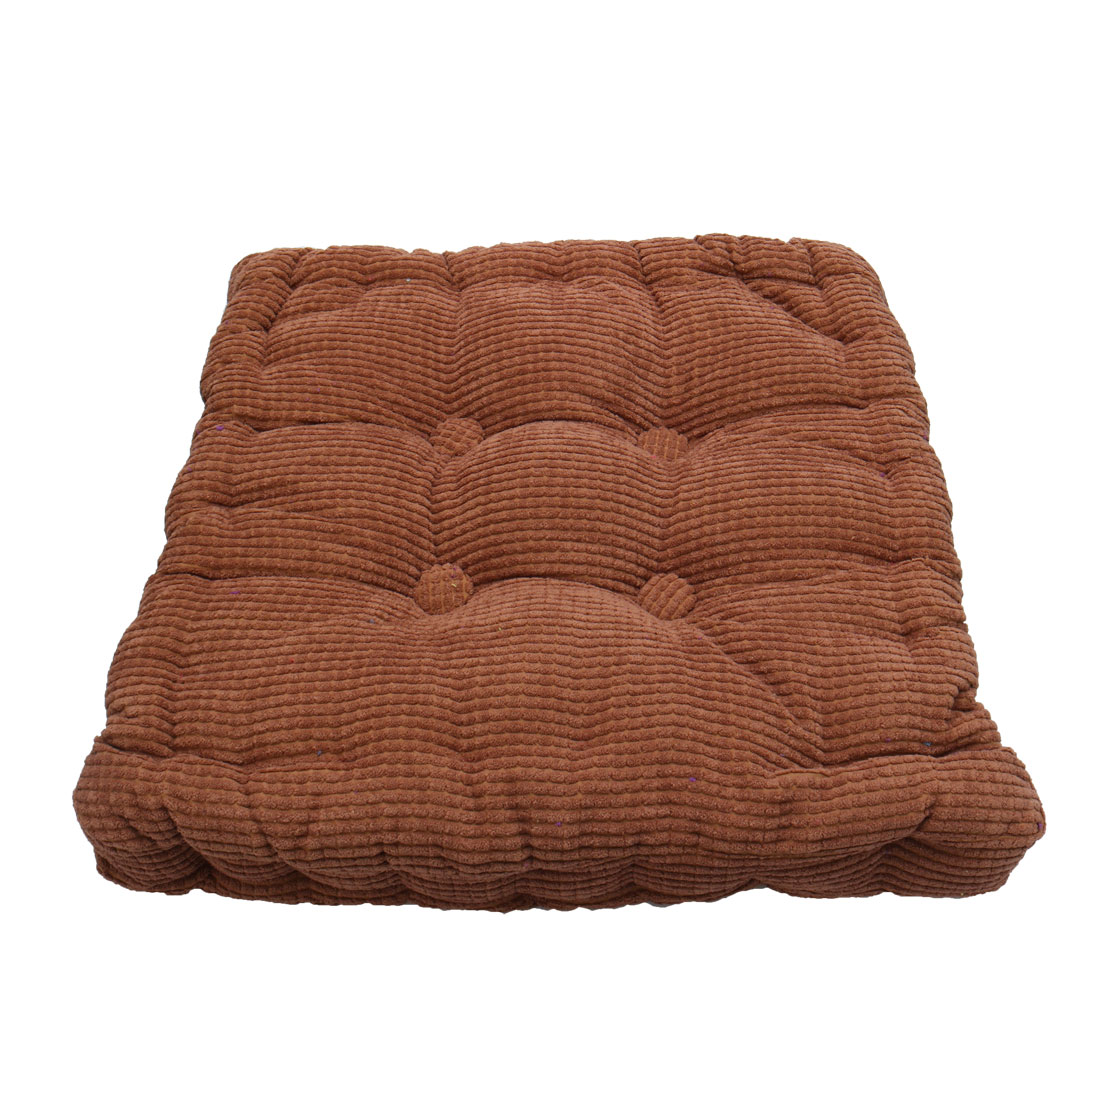 Home Office Corduroy Square Shaped Anti Slip Seat Chair Cushion Pad Cover Coffee Color